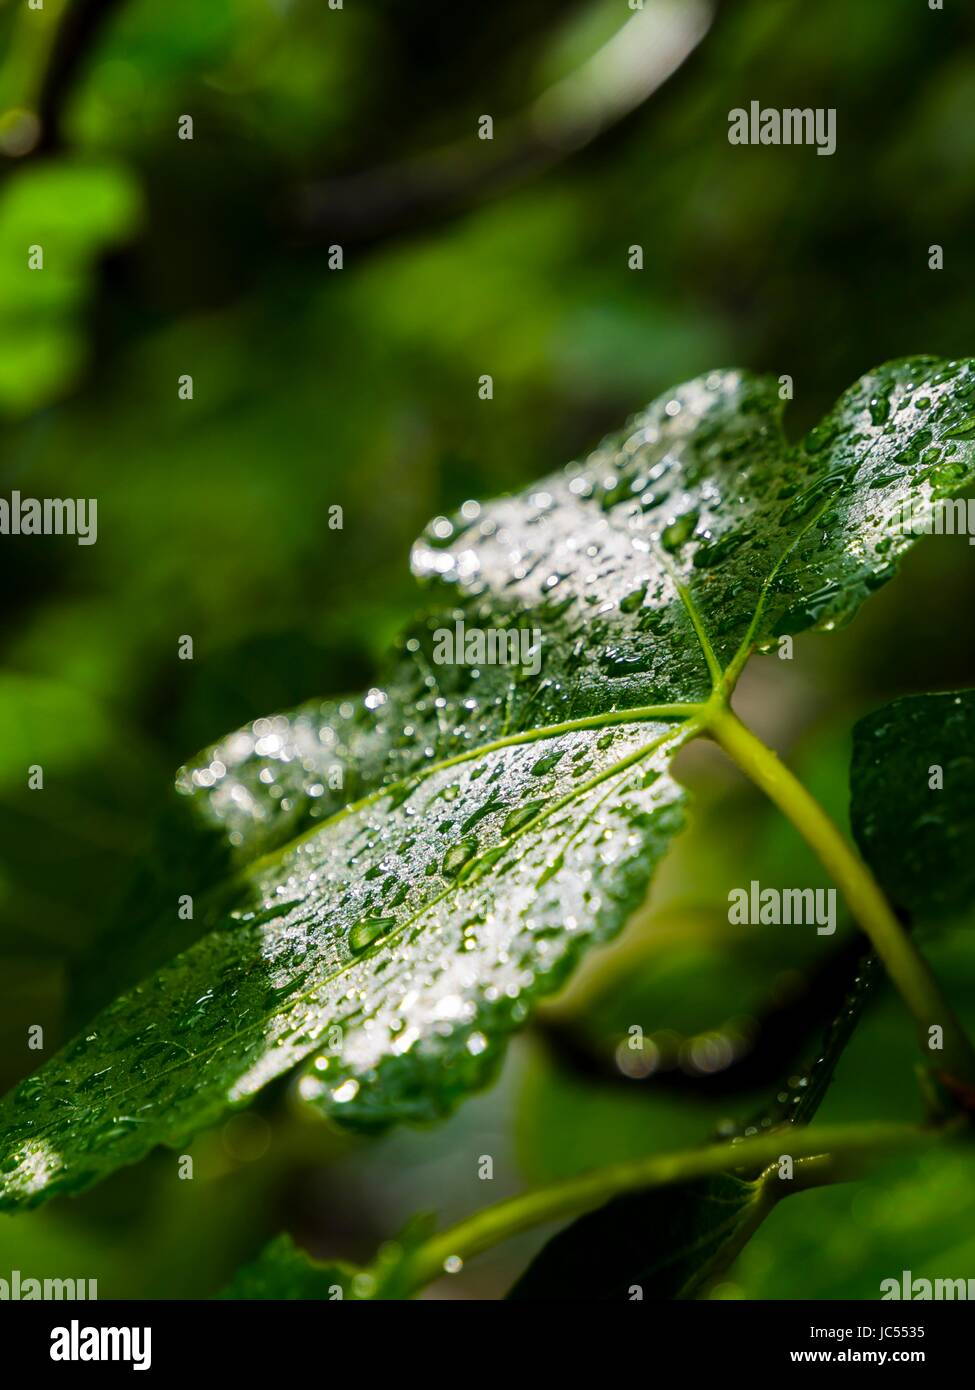 Fig tree leaf drops droplets shining shine on surface after rain - Stock Image